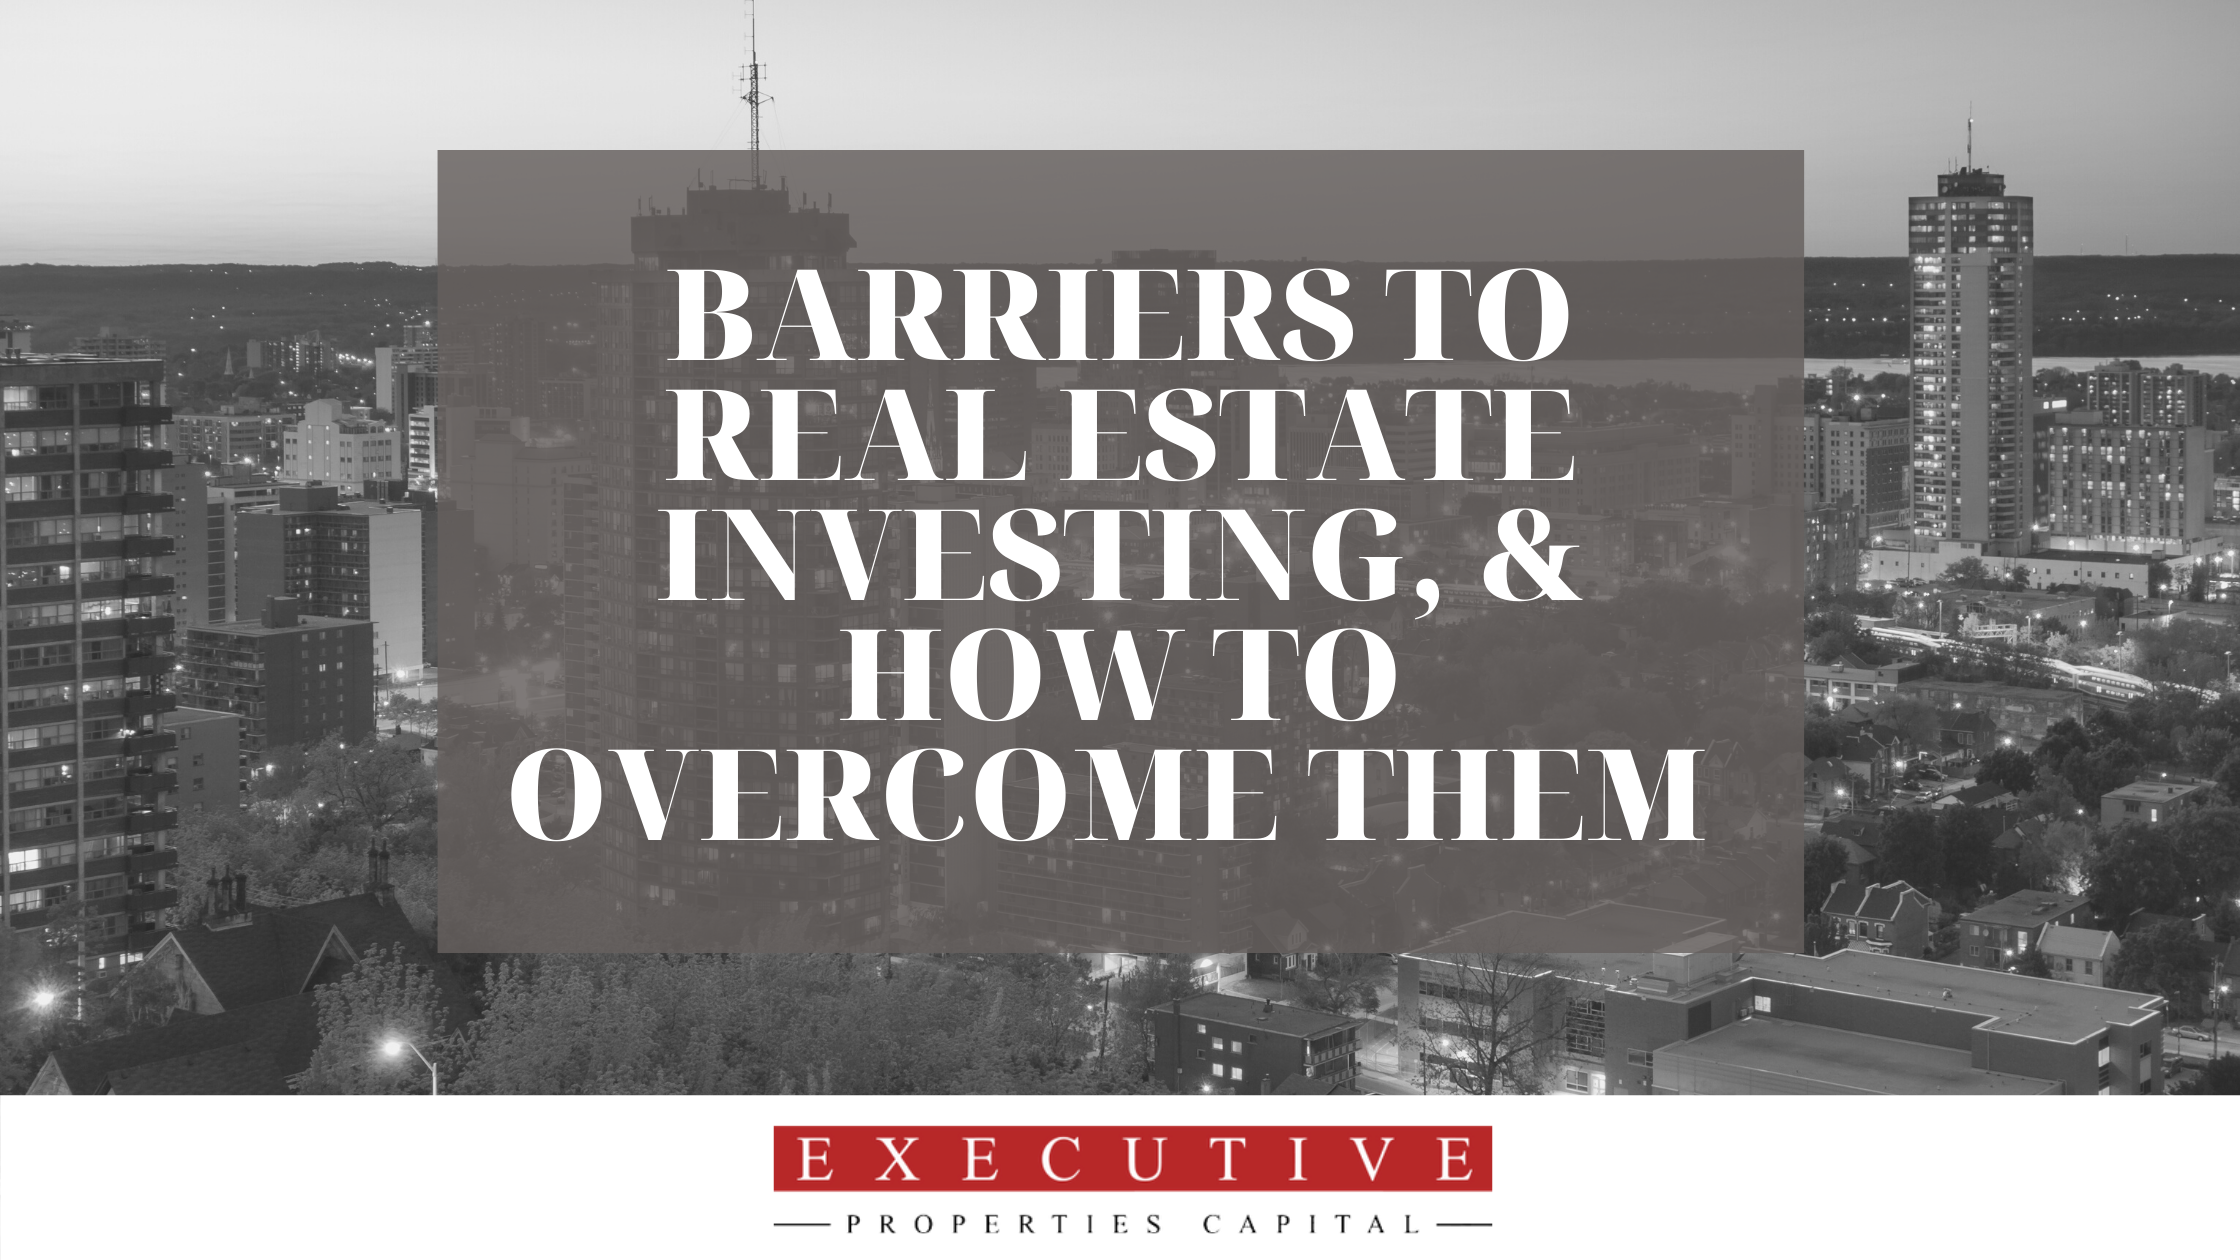 Barriers to real estate investing, and how to overcome them